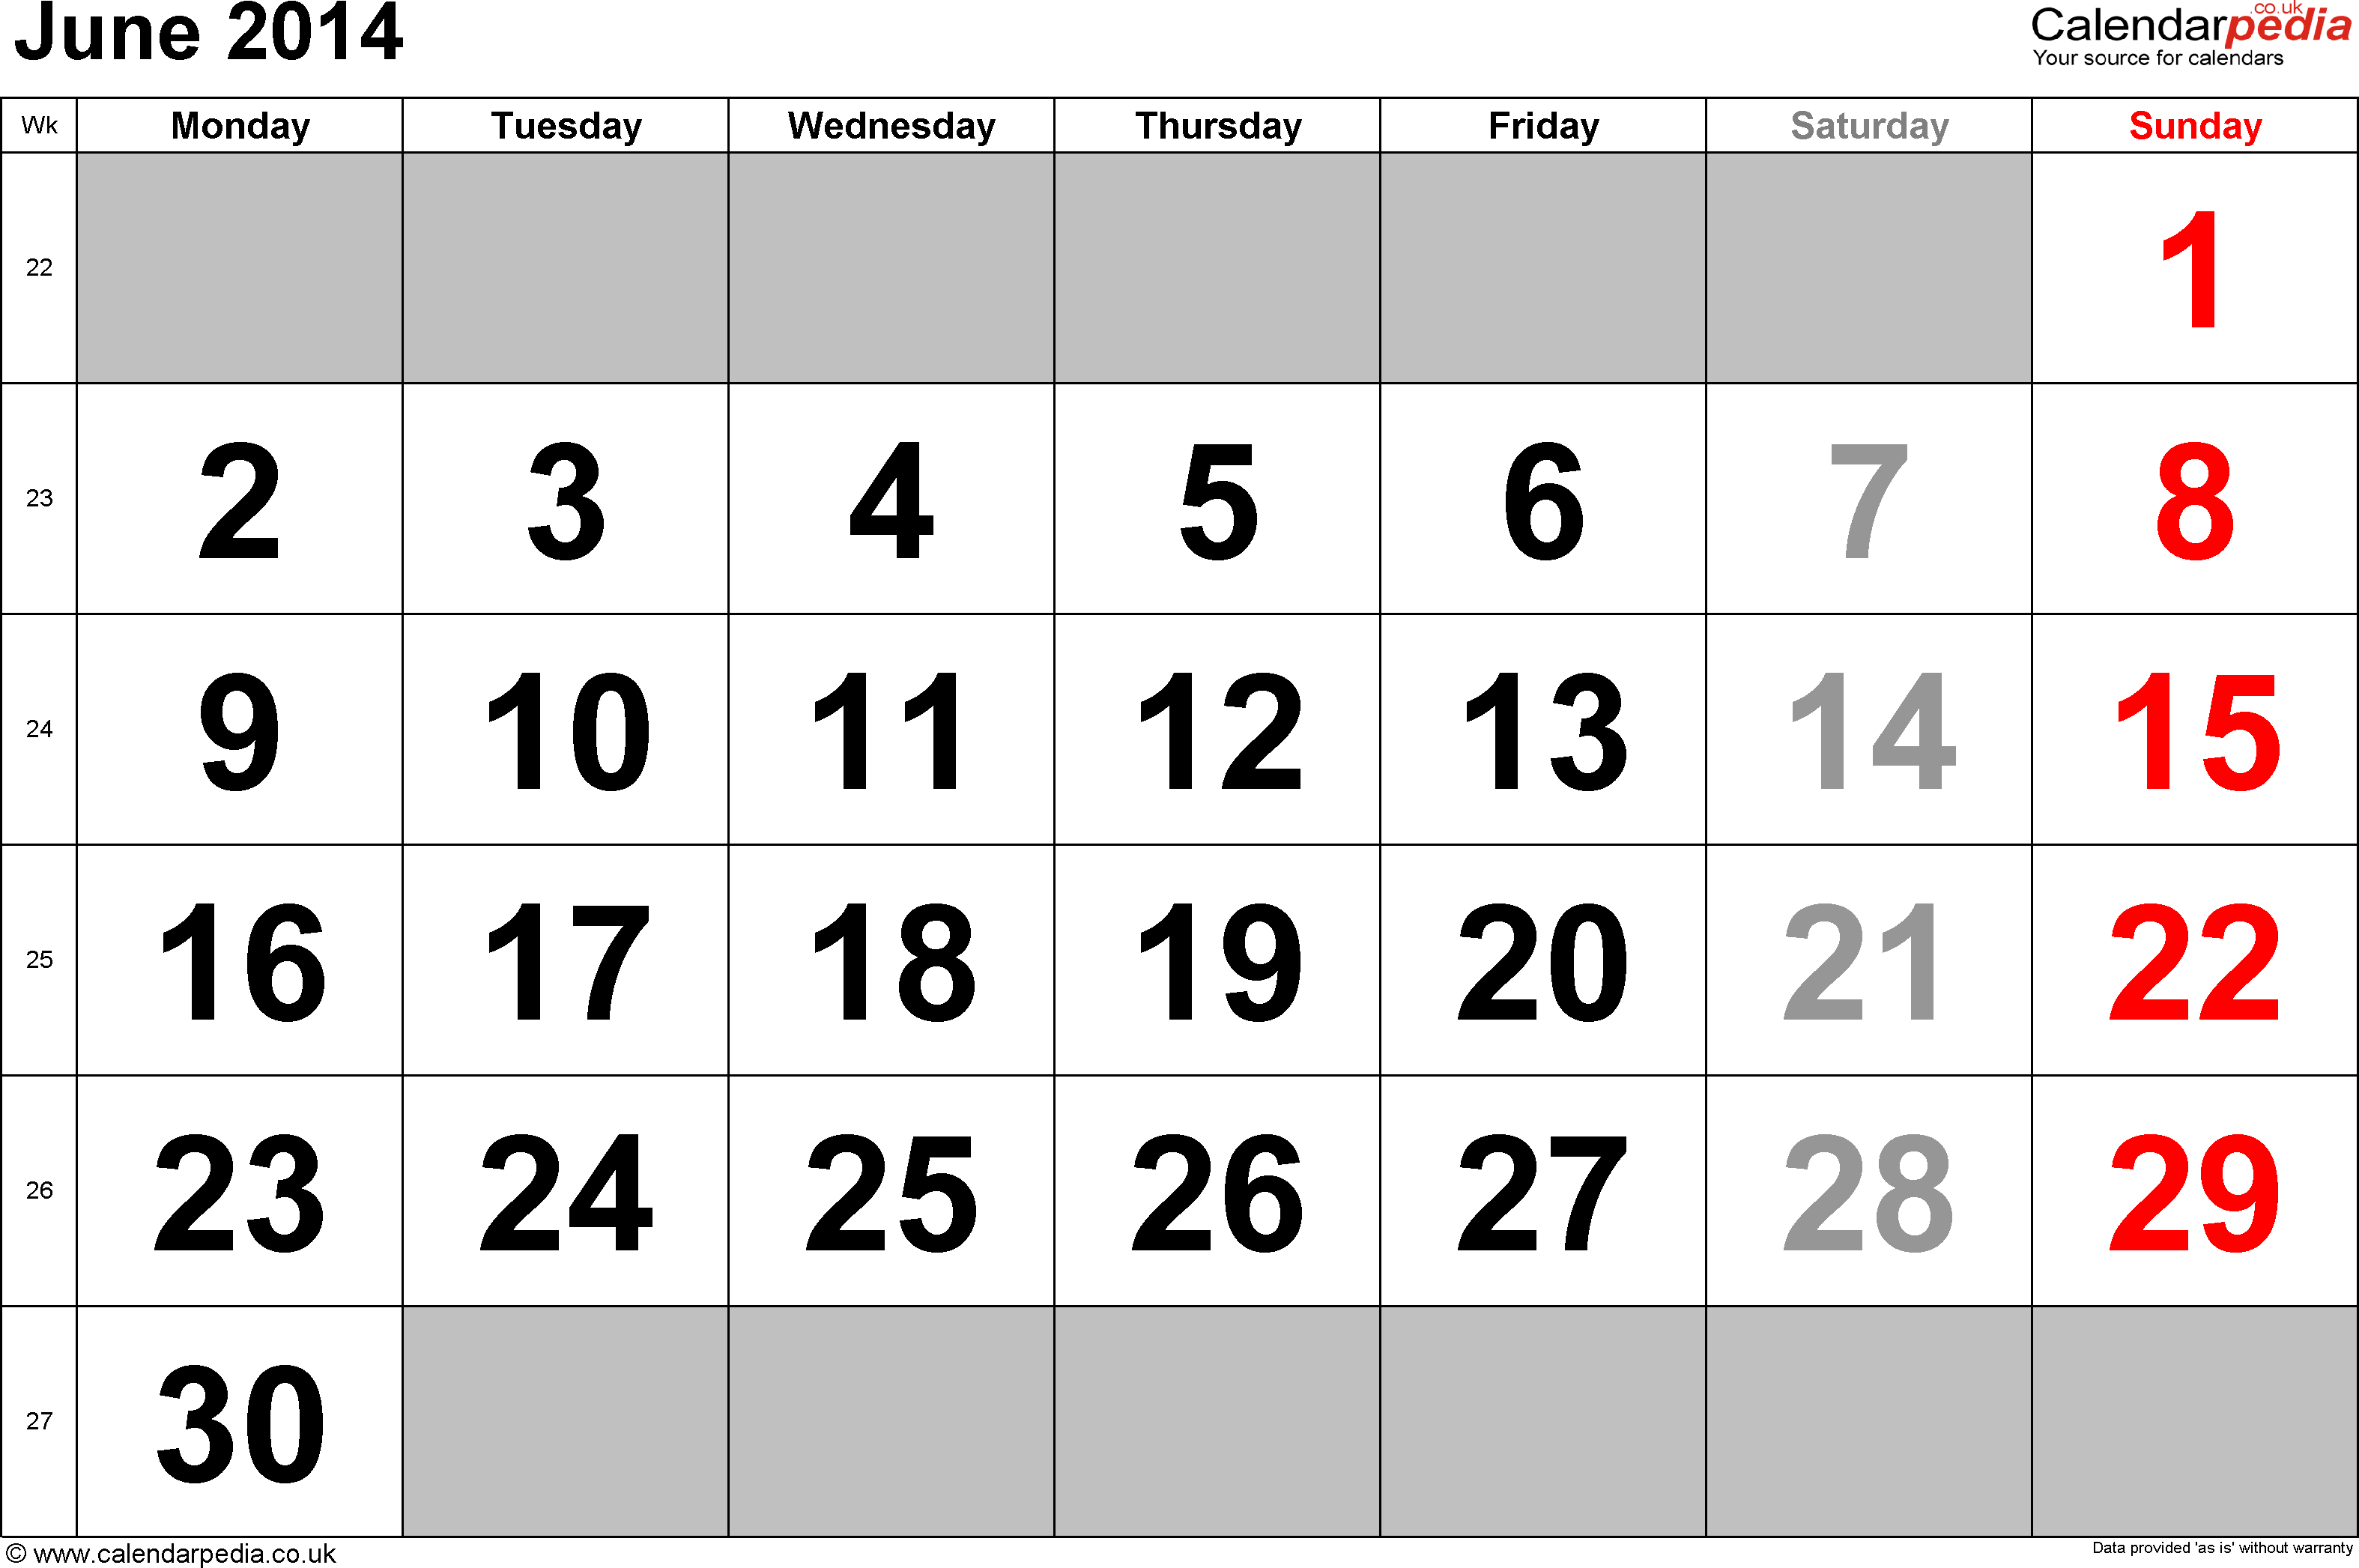 Calendar June 2014, landscape orientation, large numerals, 1 page, with UK bank holidays and week numbers